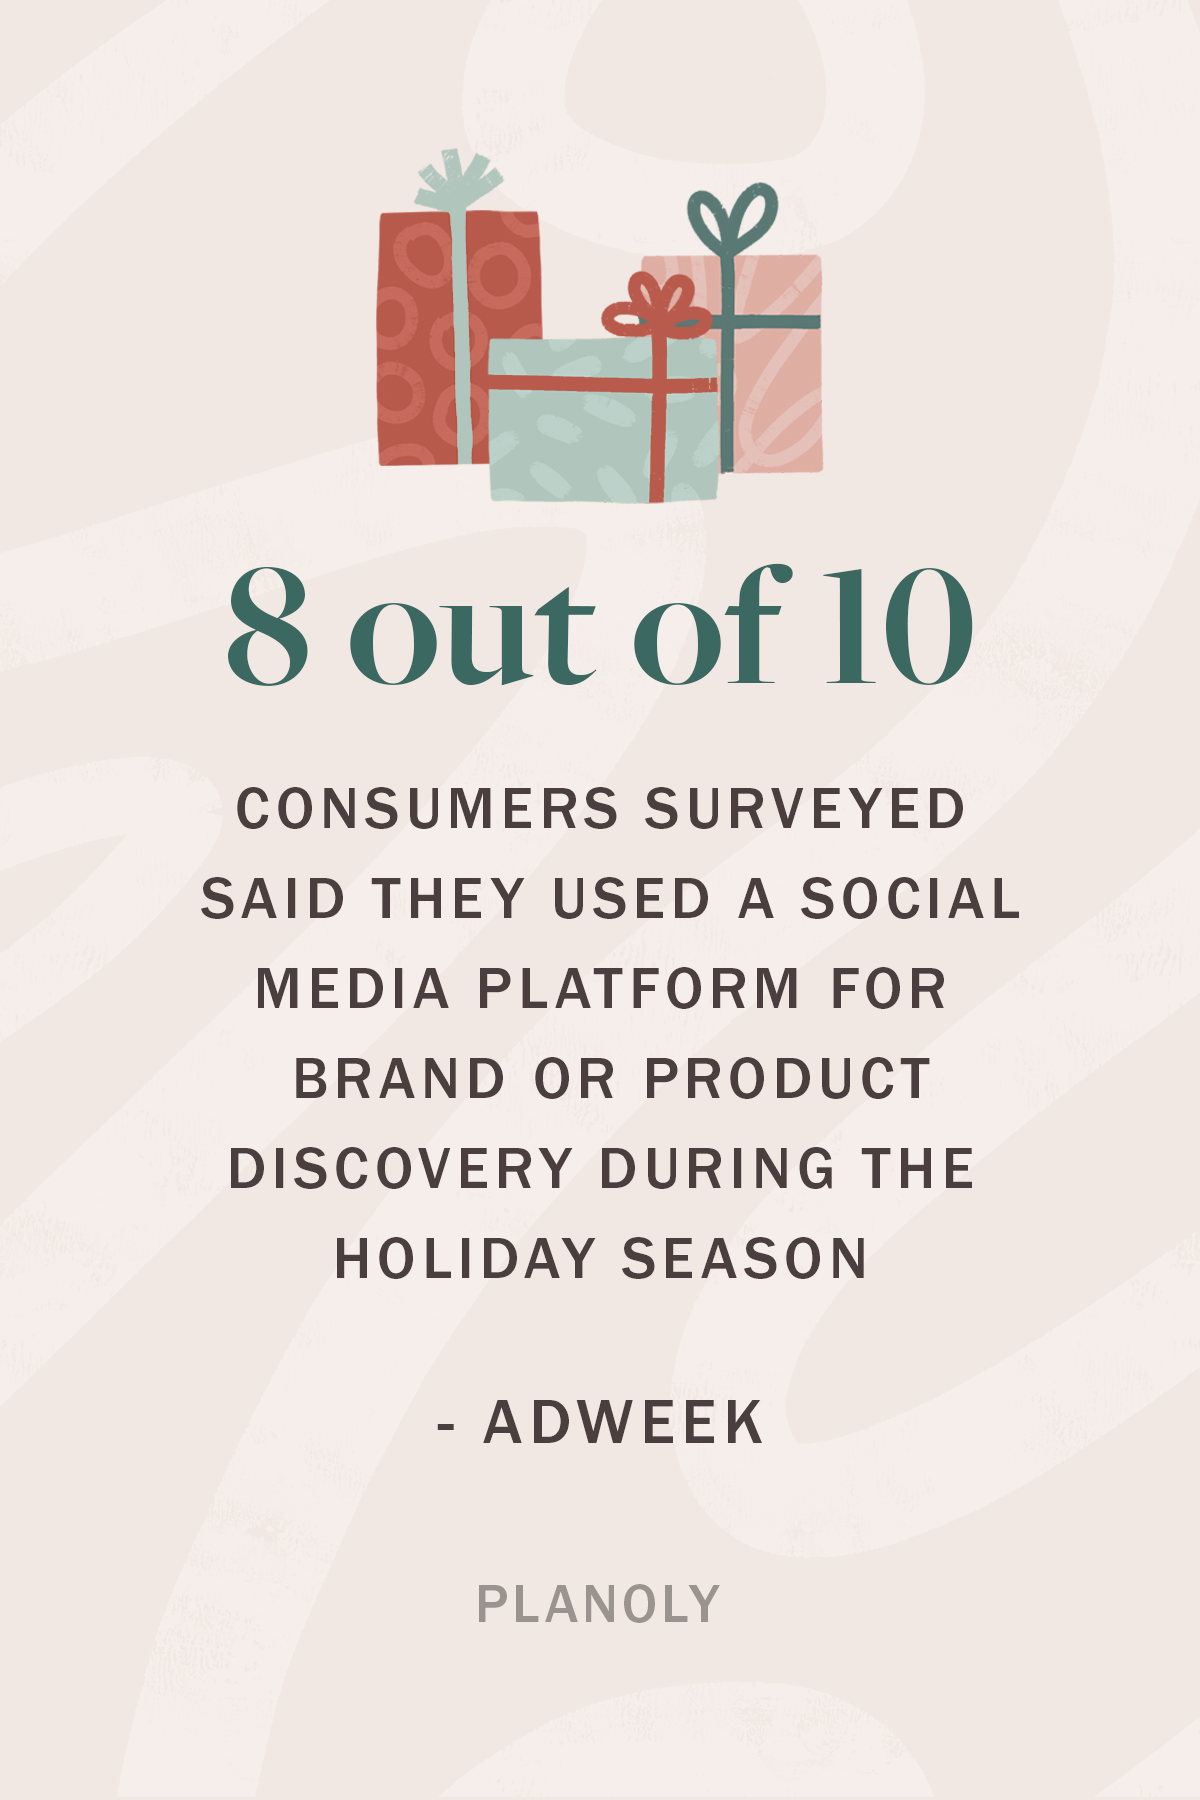 PLANOLY-Blog-12 Social Media Tips to Prepare for the Holidays-Vertical Image